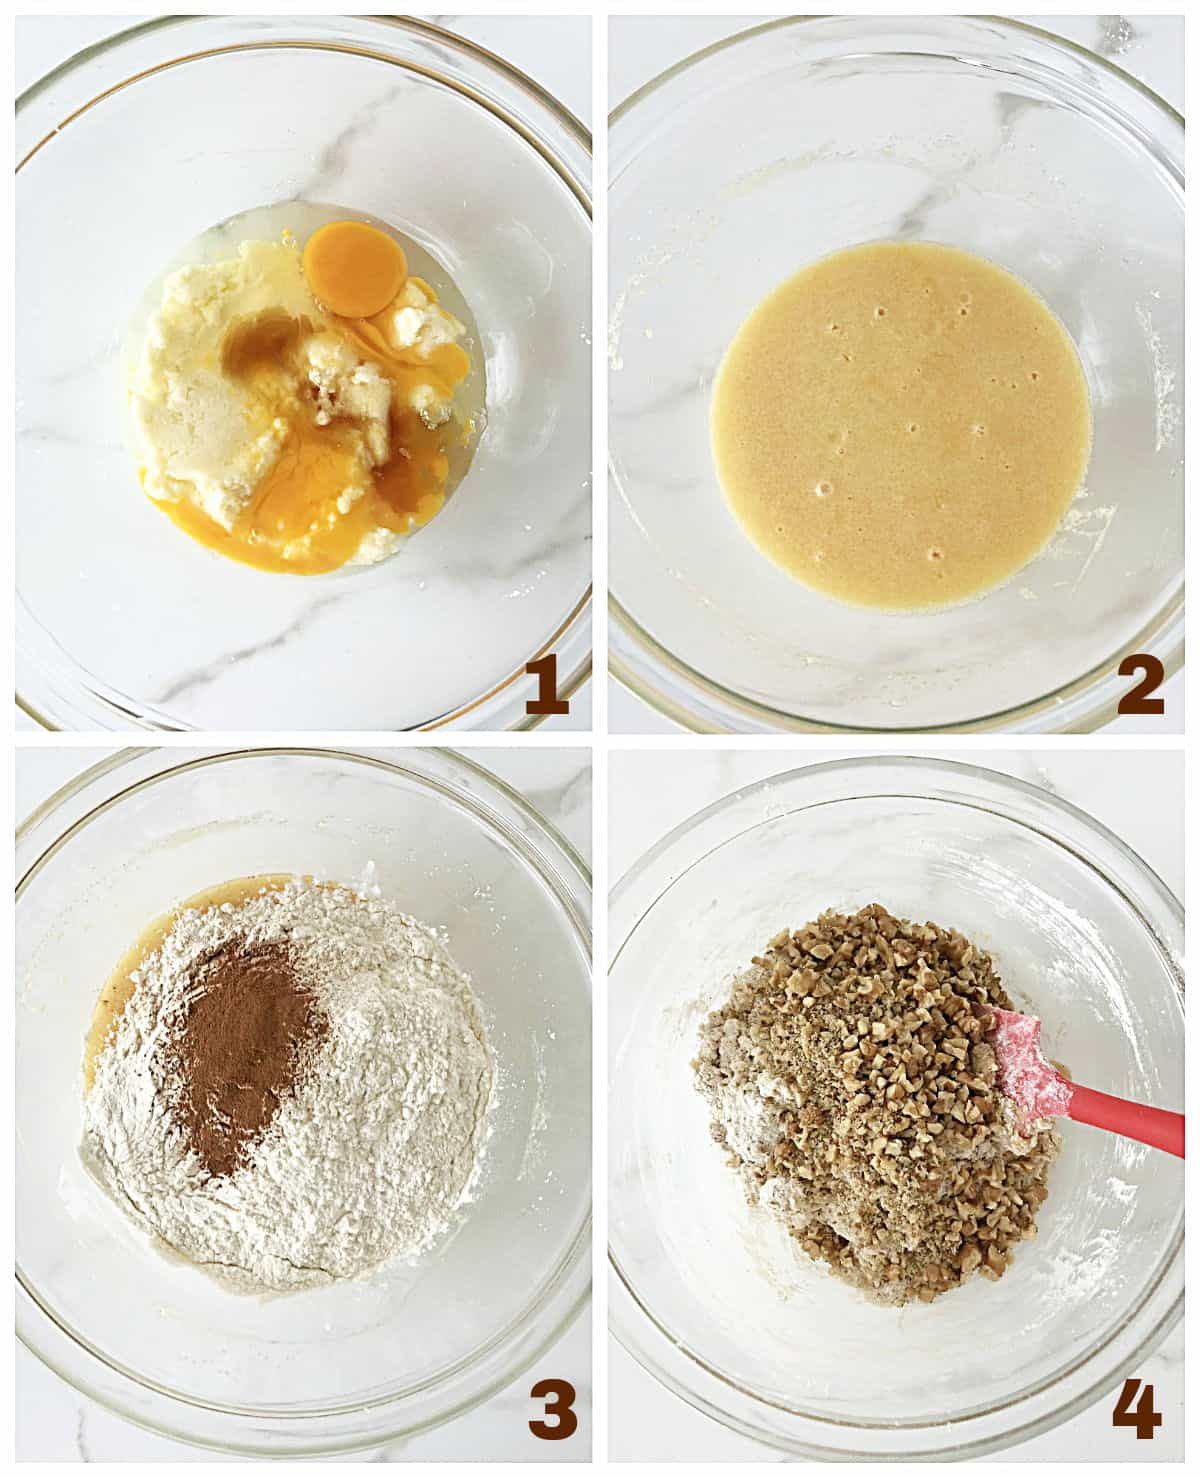 Collage making cinnamon dough. Glass bowl with butter and eggs, added dry ingredients, a red spatula